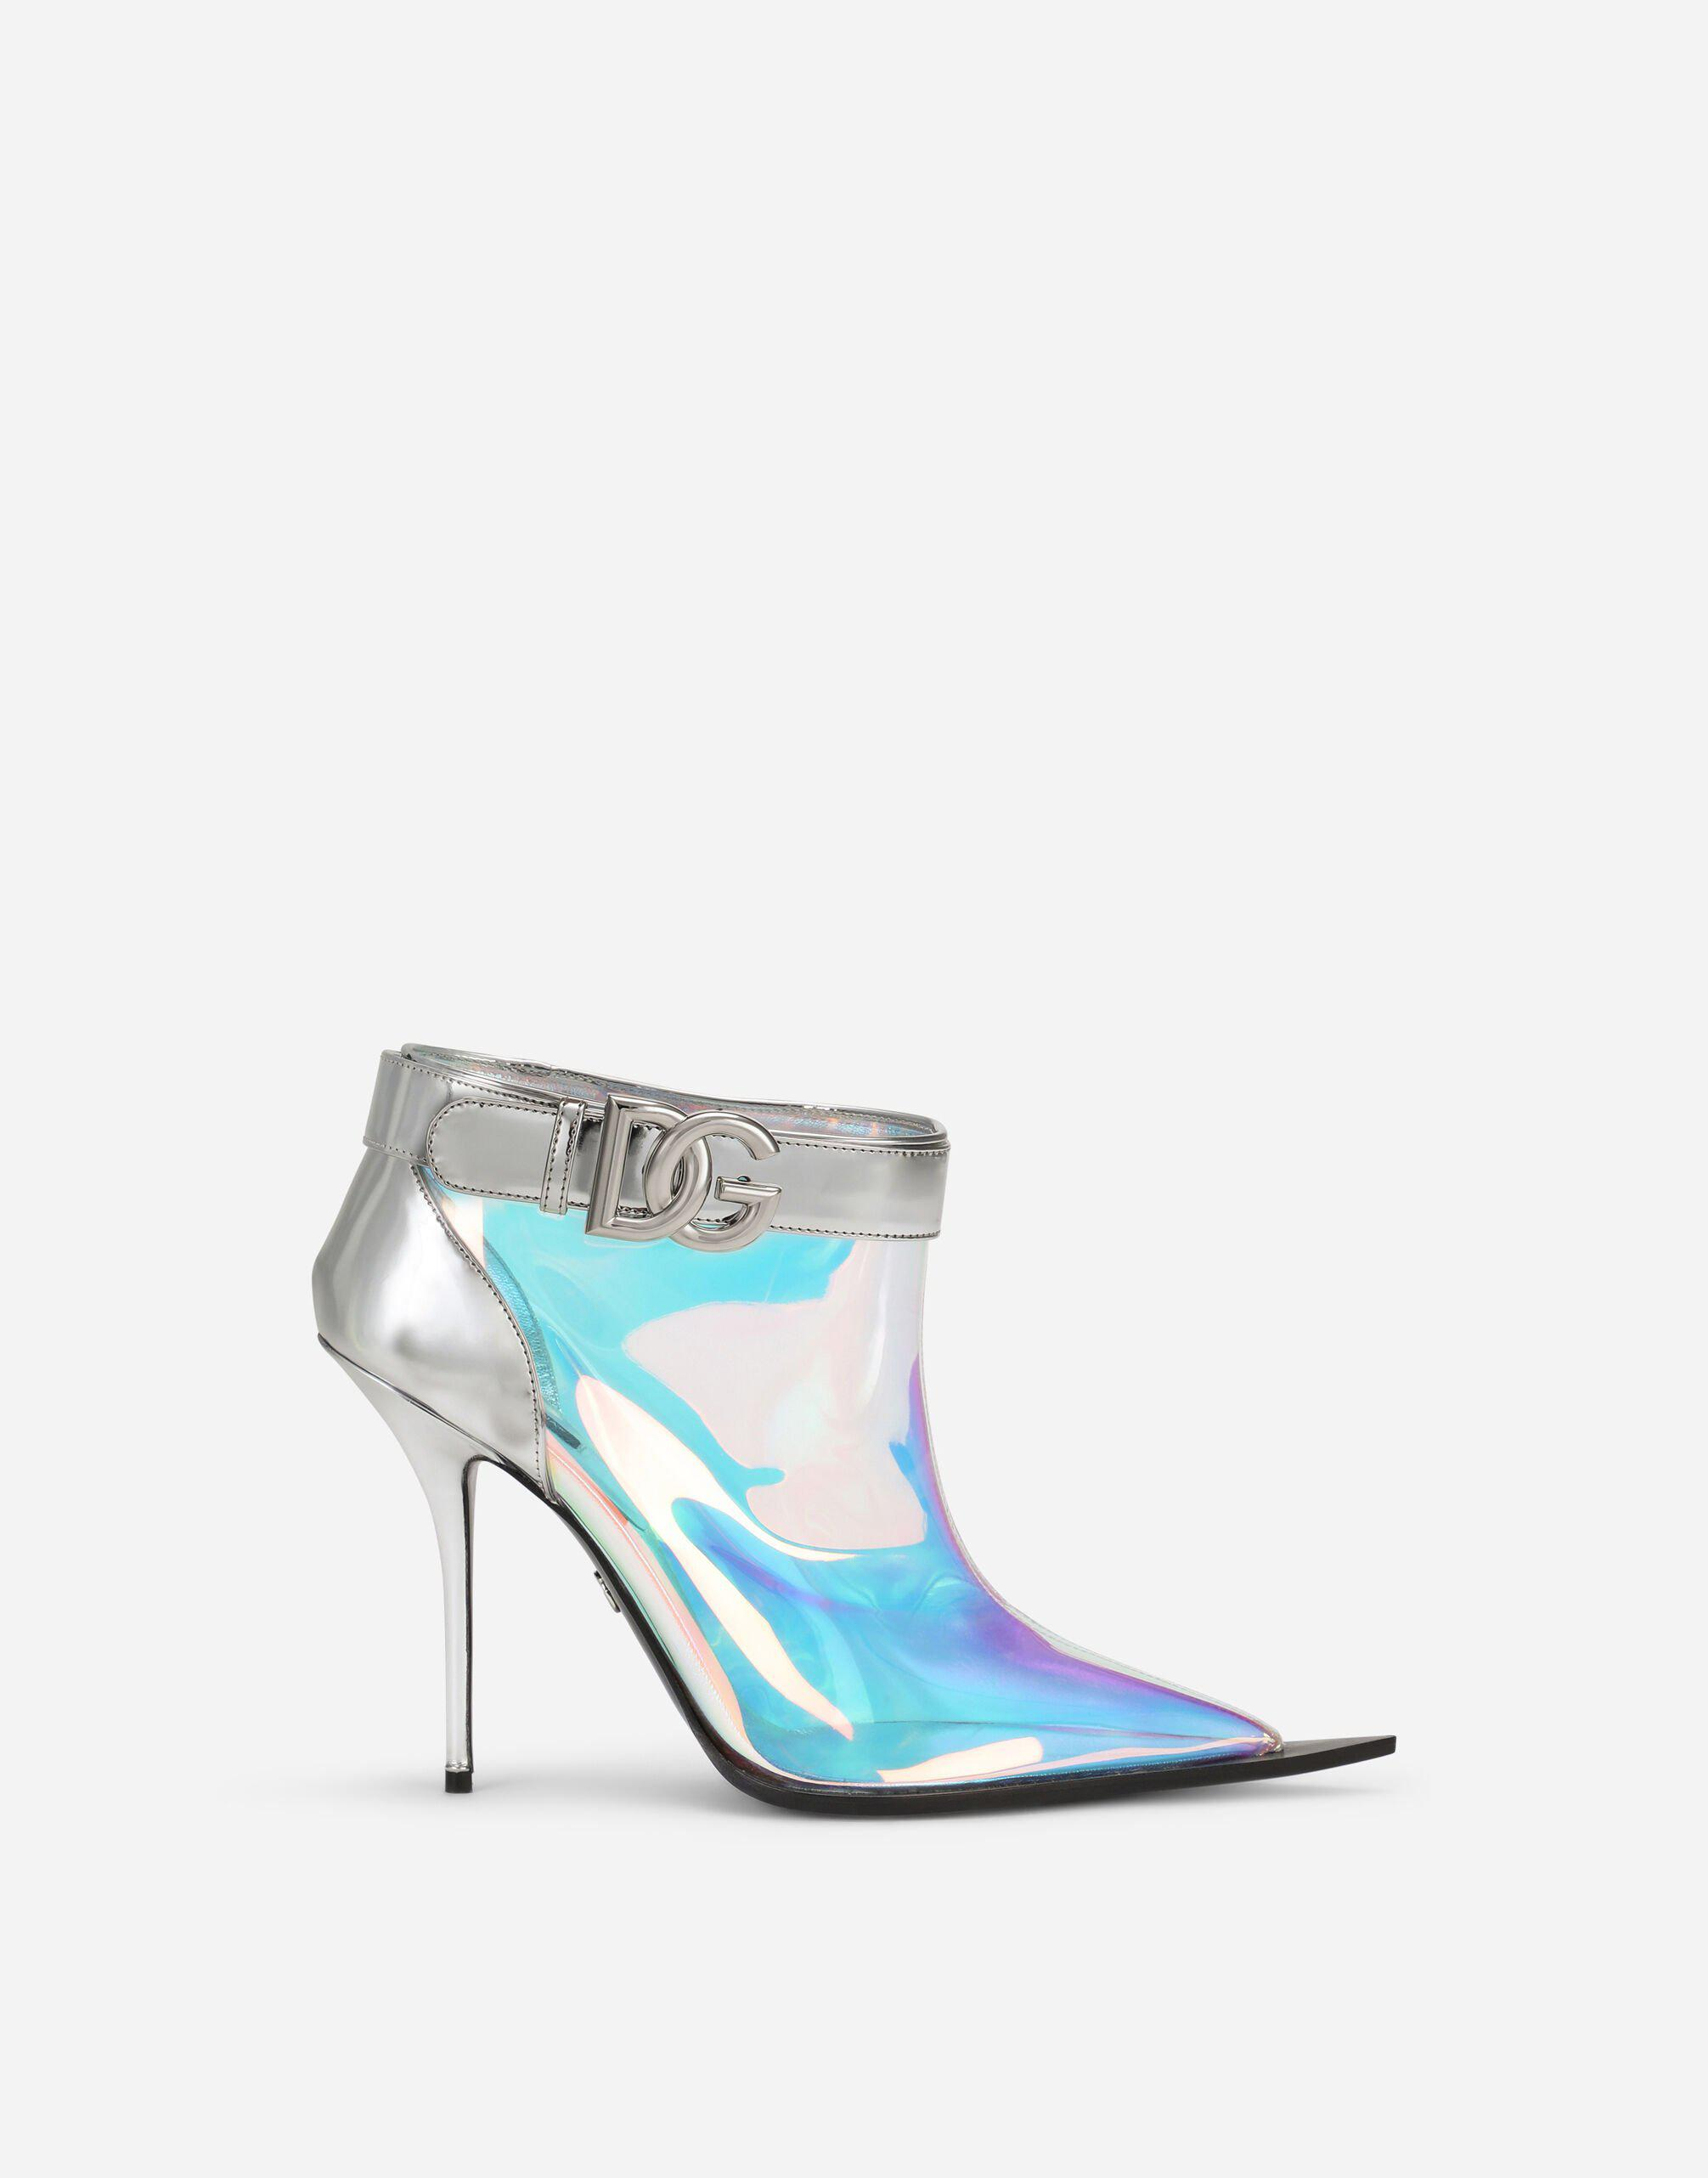 Shimmery PVC ankle boots with DG logo